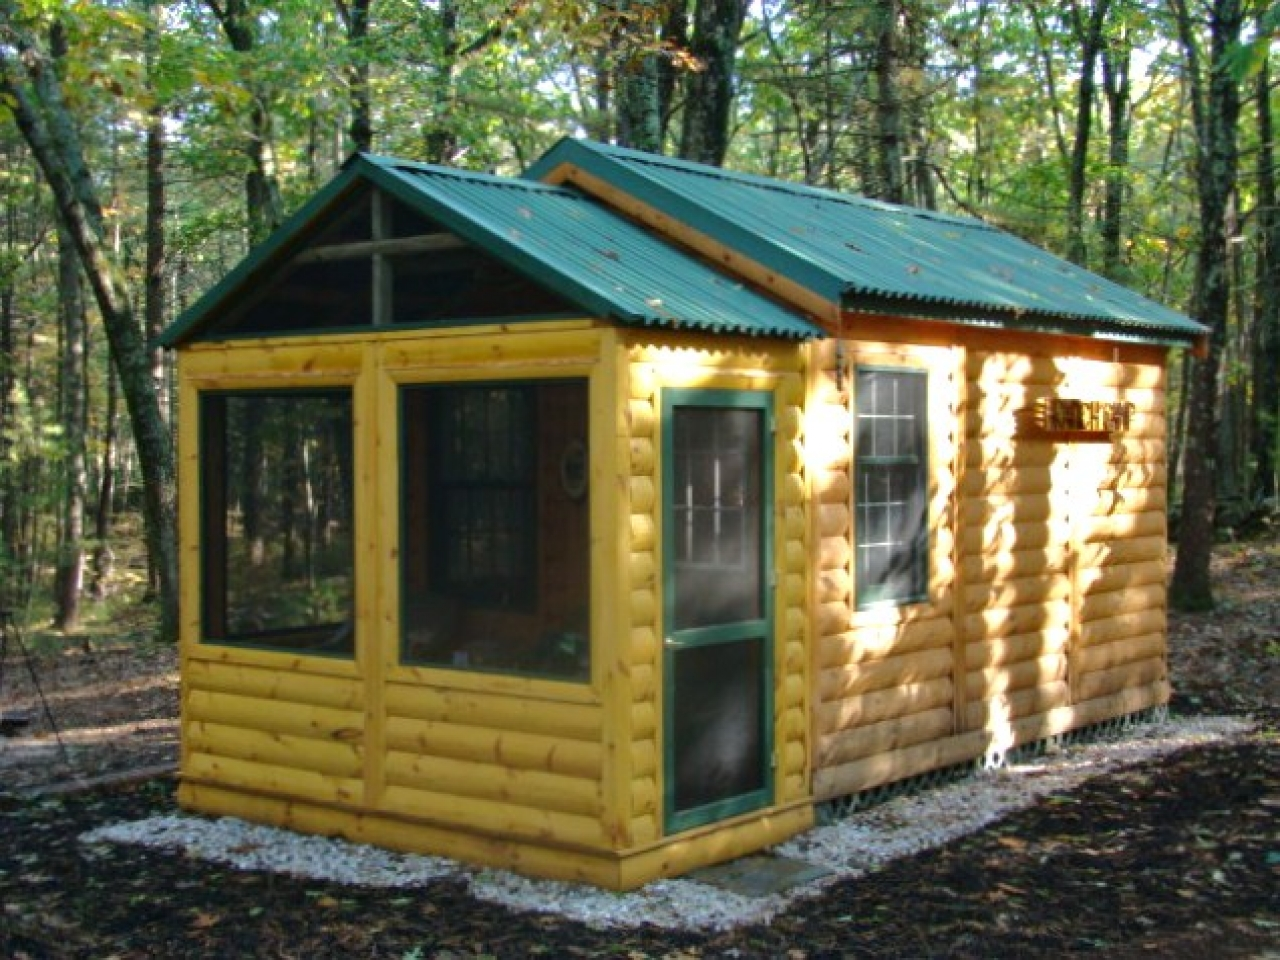 Do It Yourself Cabin Plans Free Small Cabin Plans Small: Inexpensive Small Cabin Plans Small Camping Cabin Kits